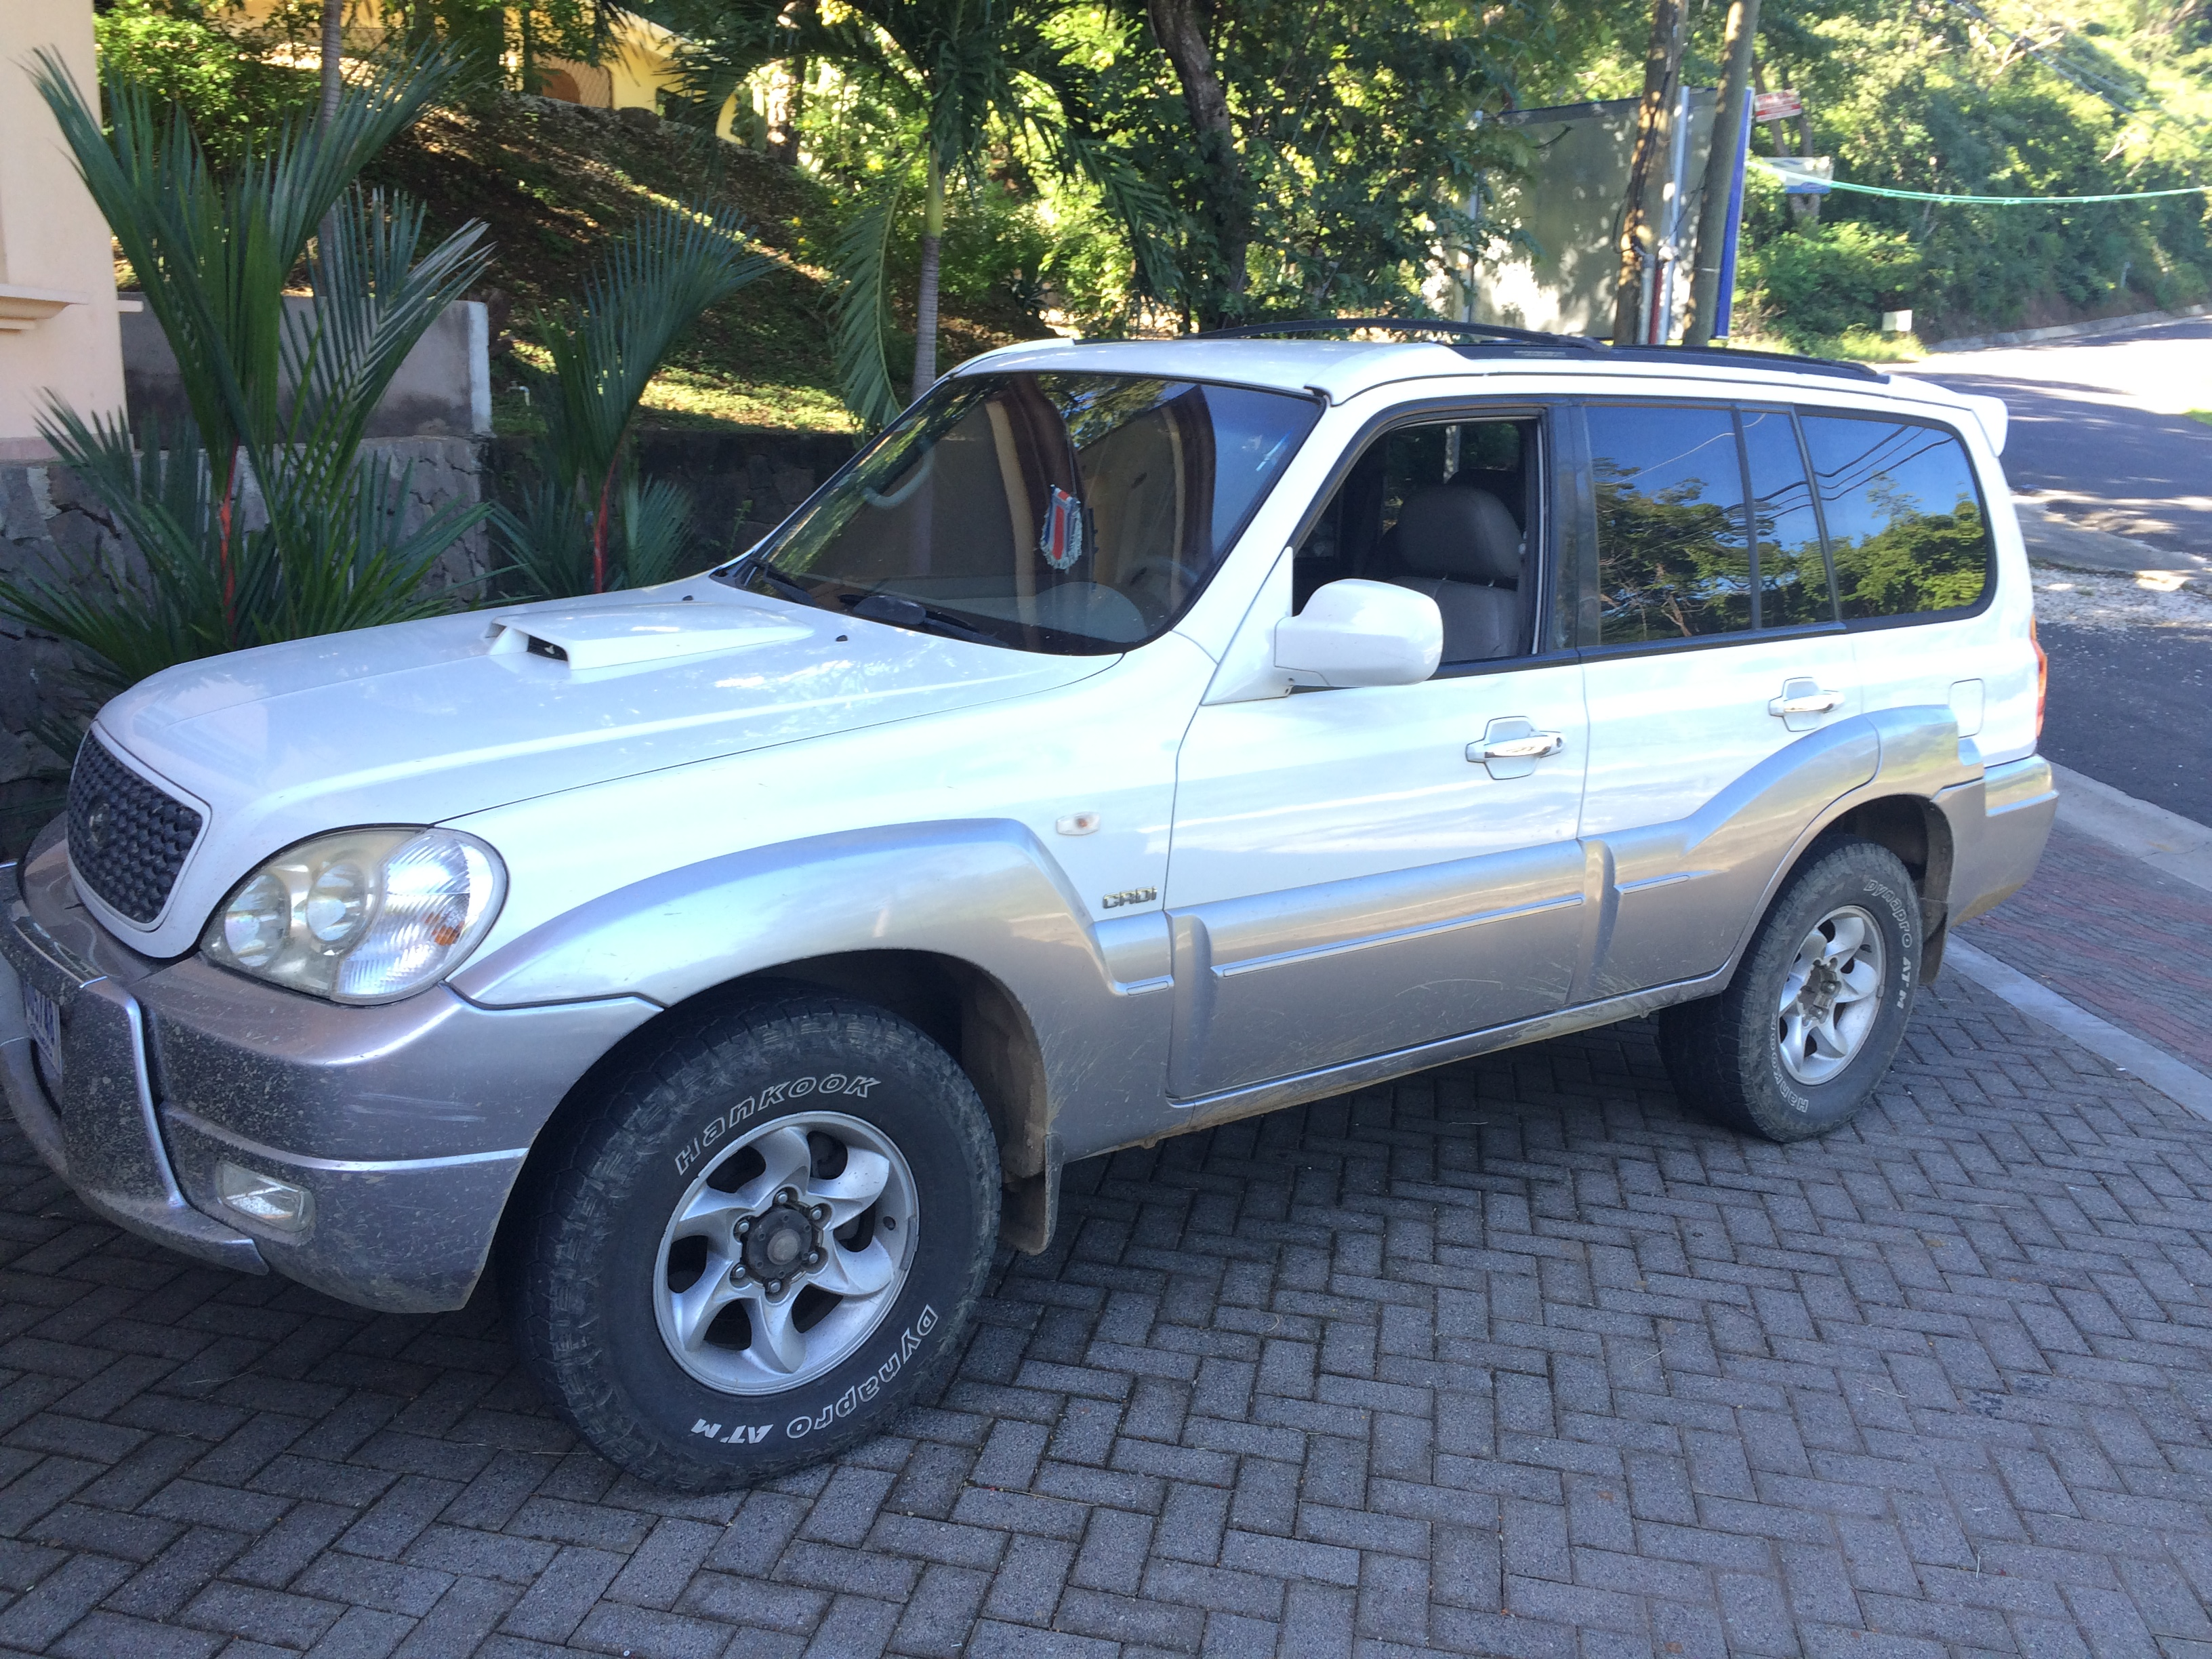 Having fun buying a used and new car in Costa Rica - Costa Rica ...